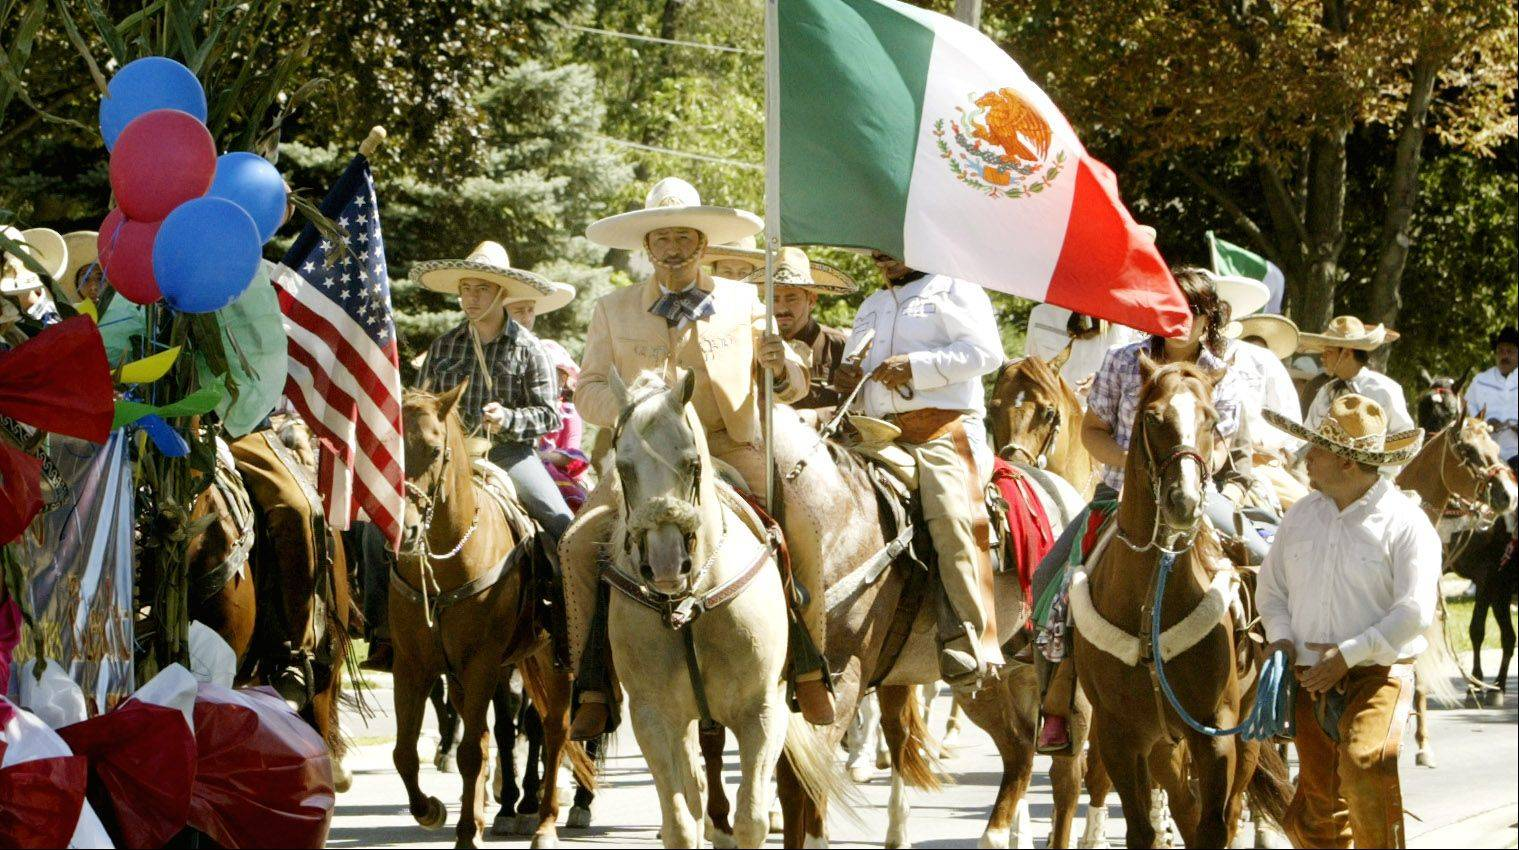 West Chicago will celebrate Mexican Independence Day with a parade and other events on Sept. 15 -- come rain or shine.